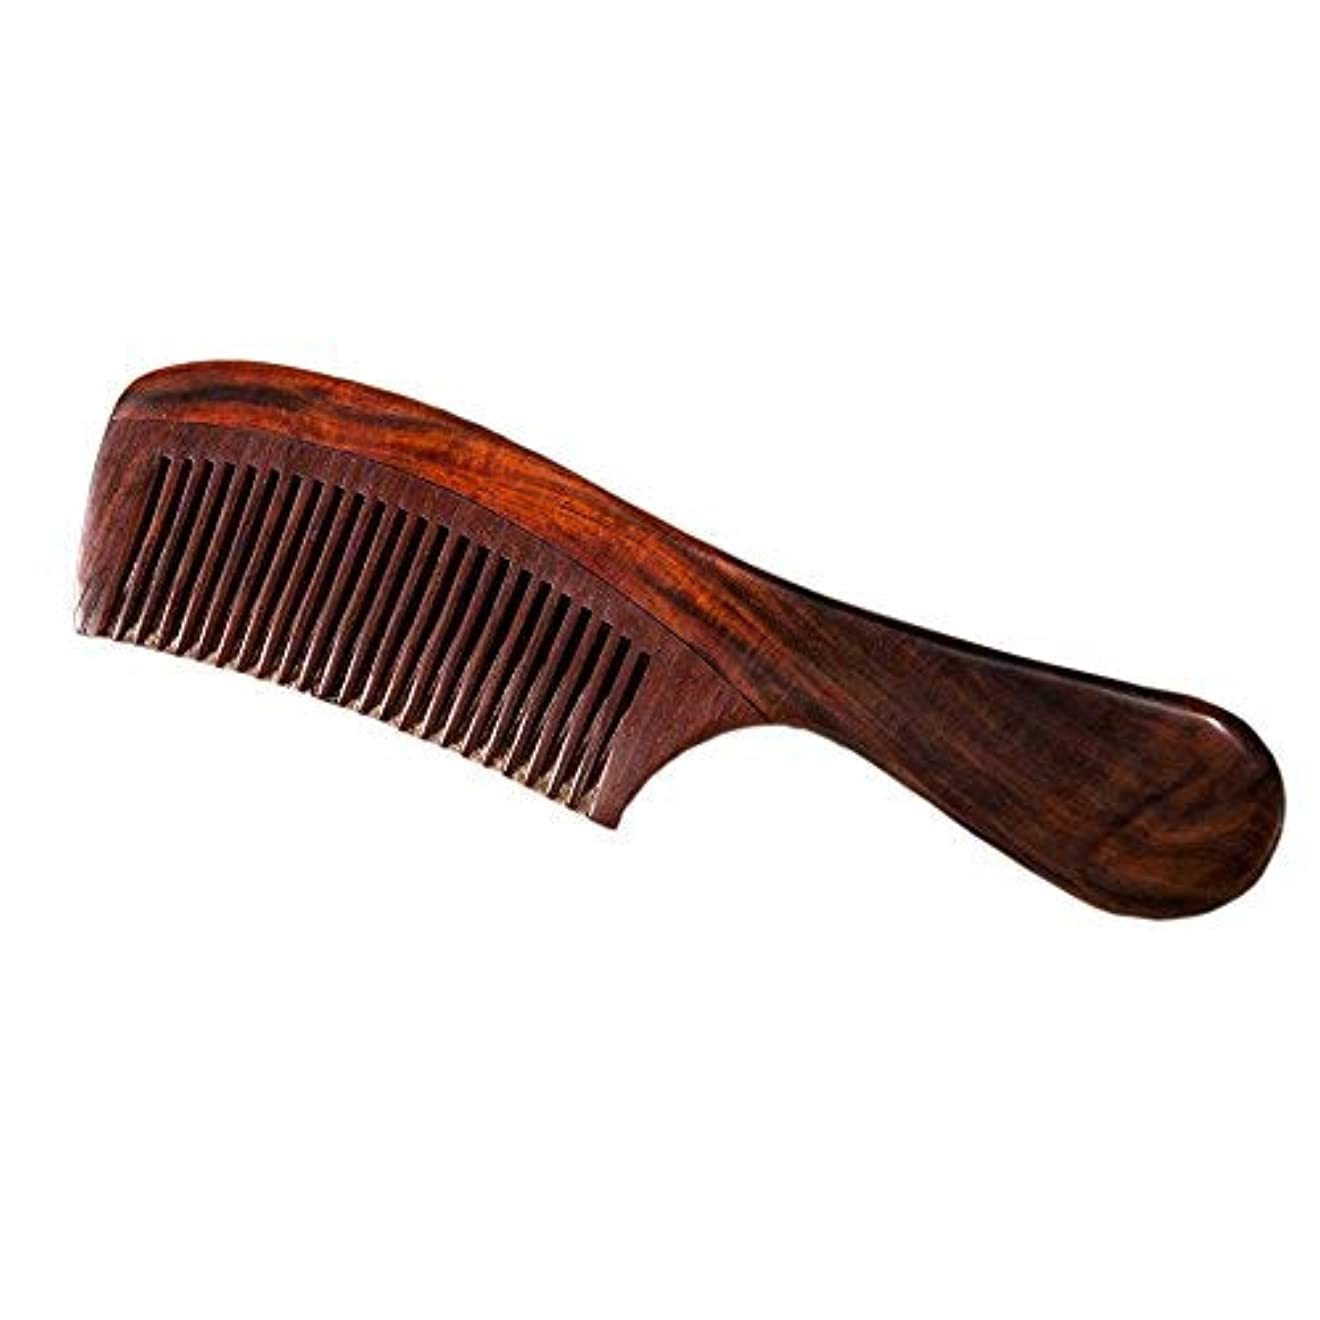 Natural Redwood Hair Comb, No Static Handmade Medium Tooth Hair Comb, Smooth and Comfortable Message Wood Comb...